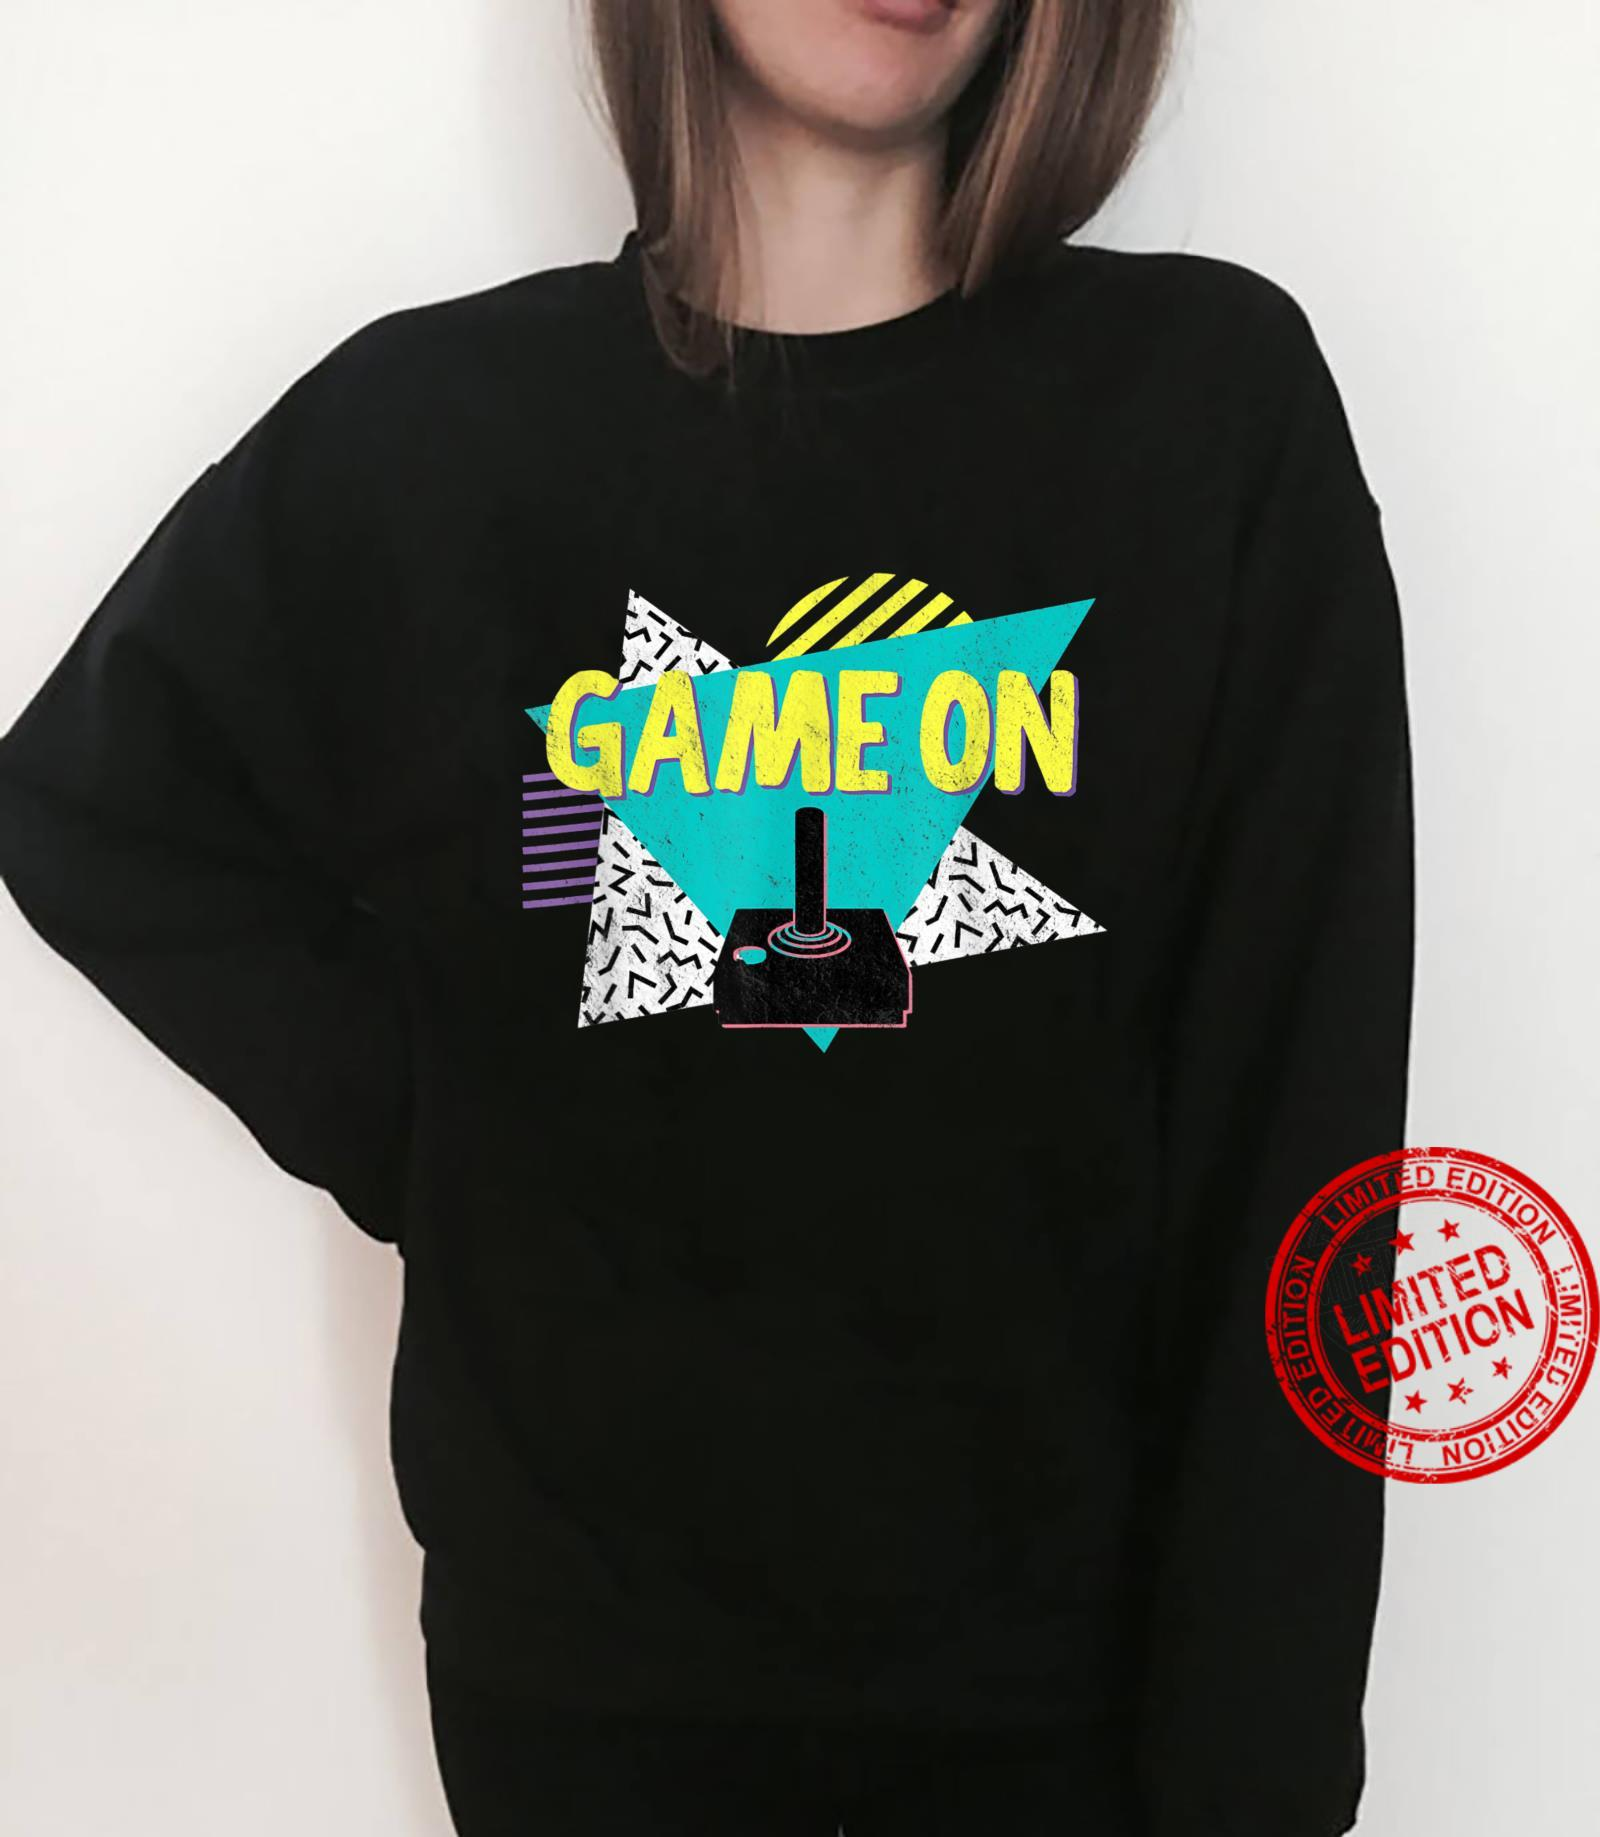 70s or 80s Retro Vintage Video Game Shirt sweater